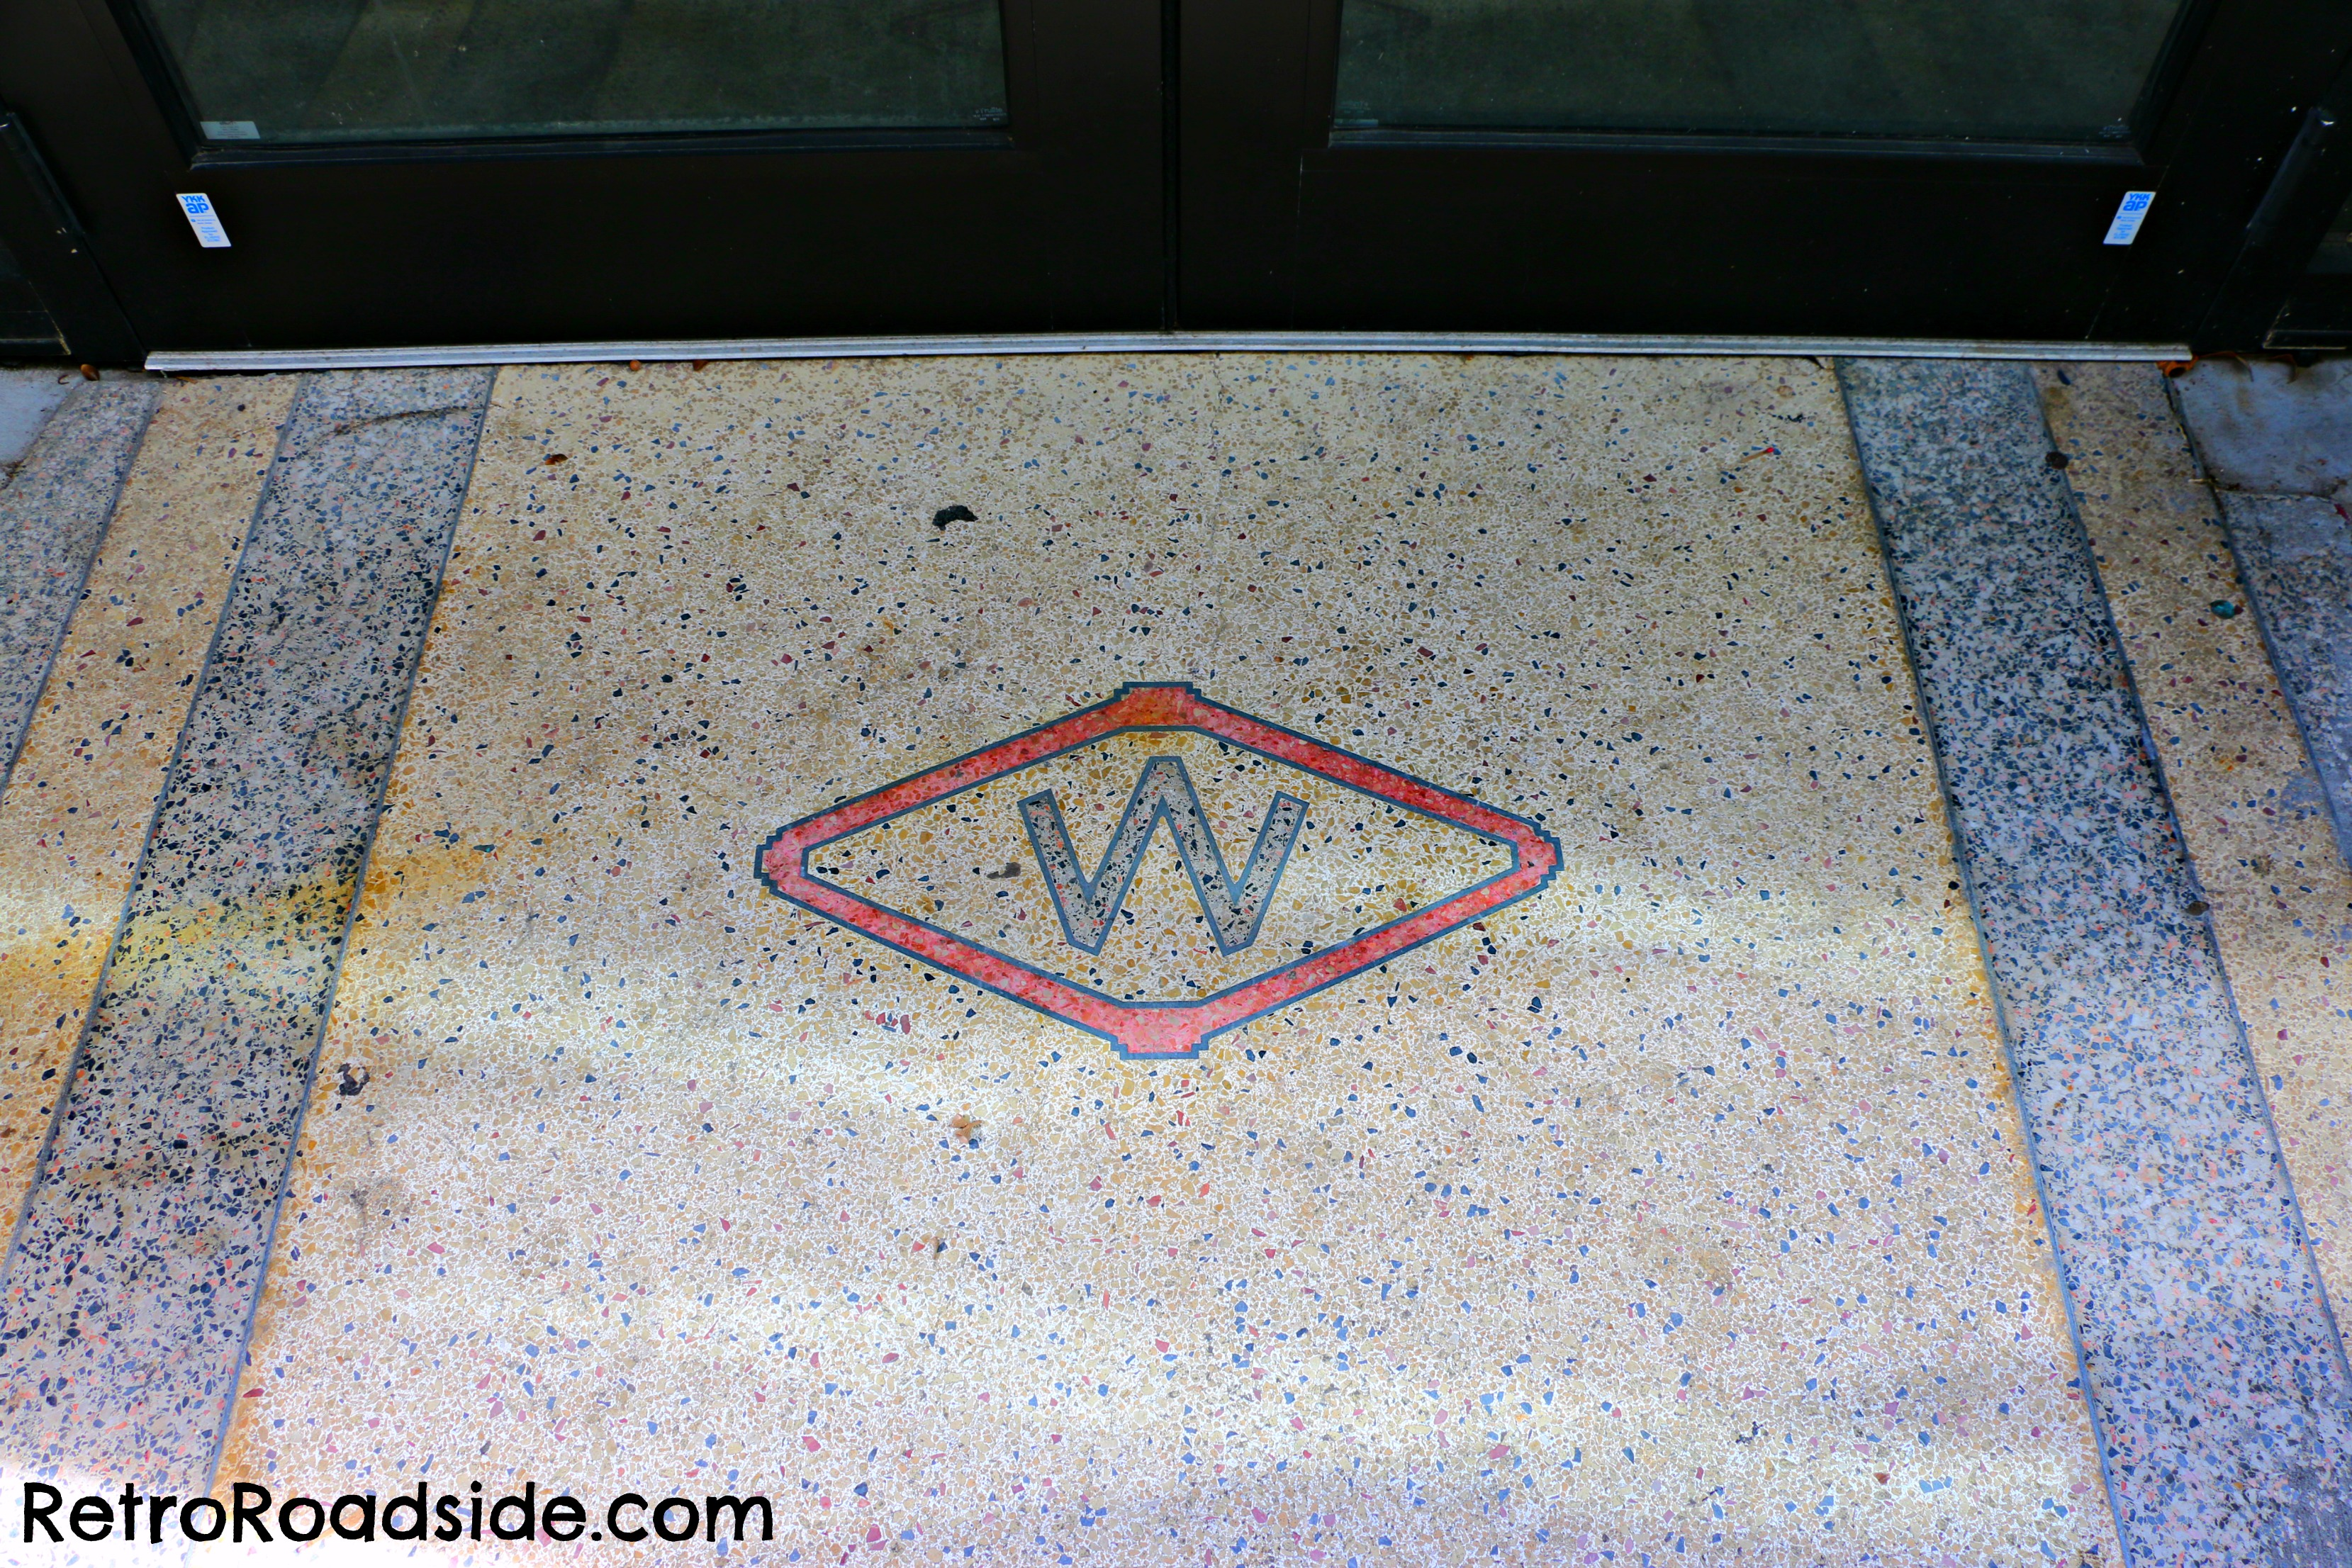 woolworth-doorway-tampa-2016